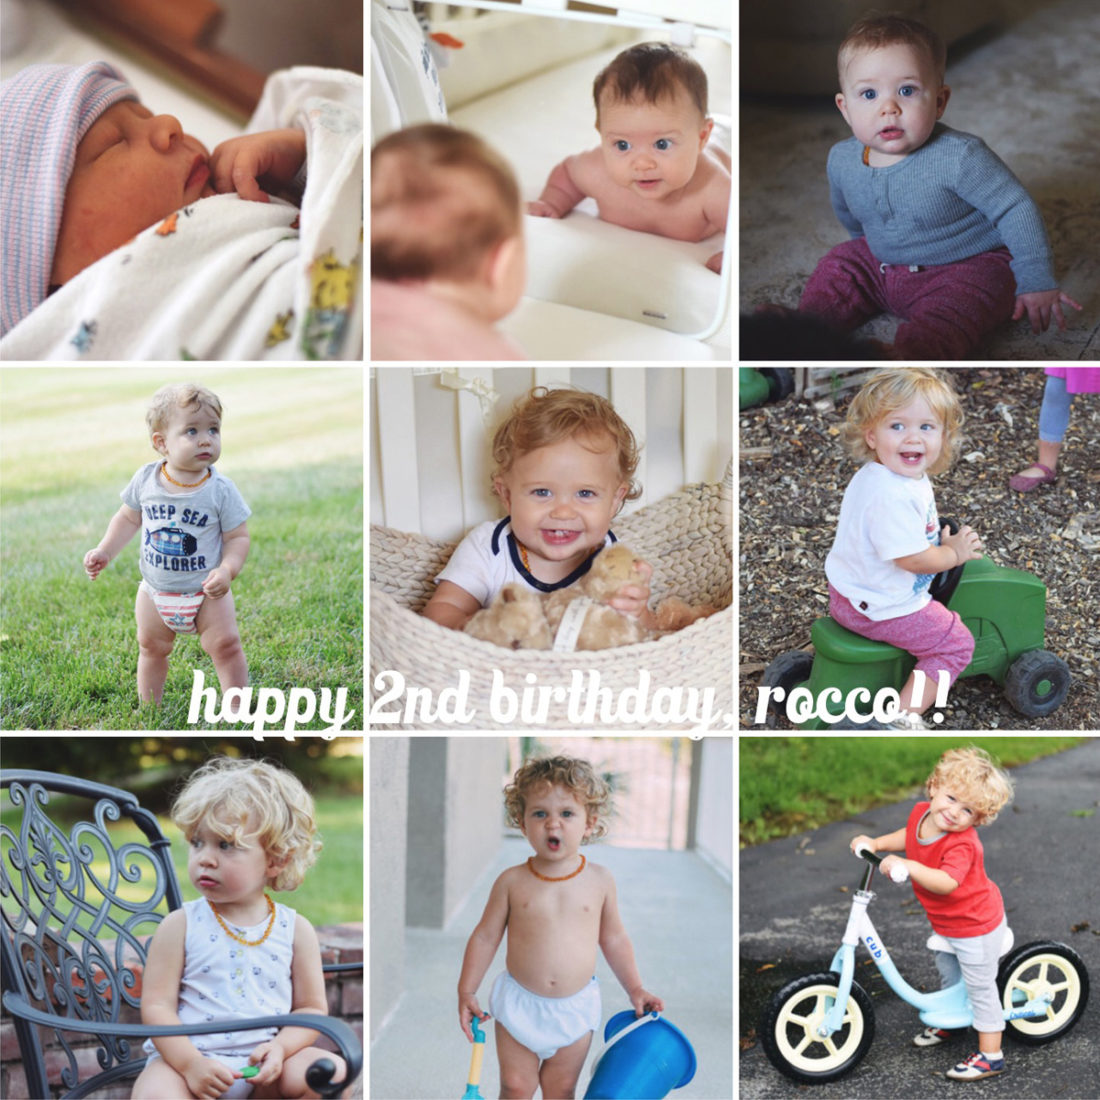 happy 2nd birthday, rocco!!!